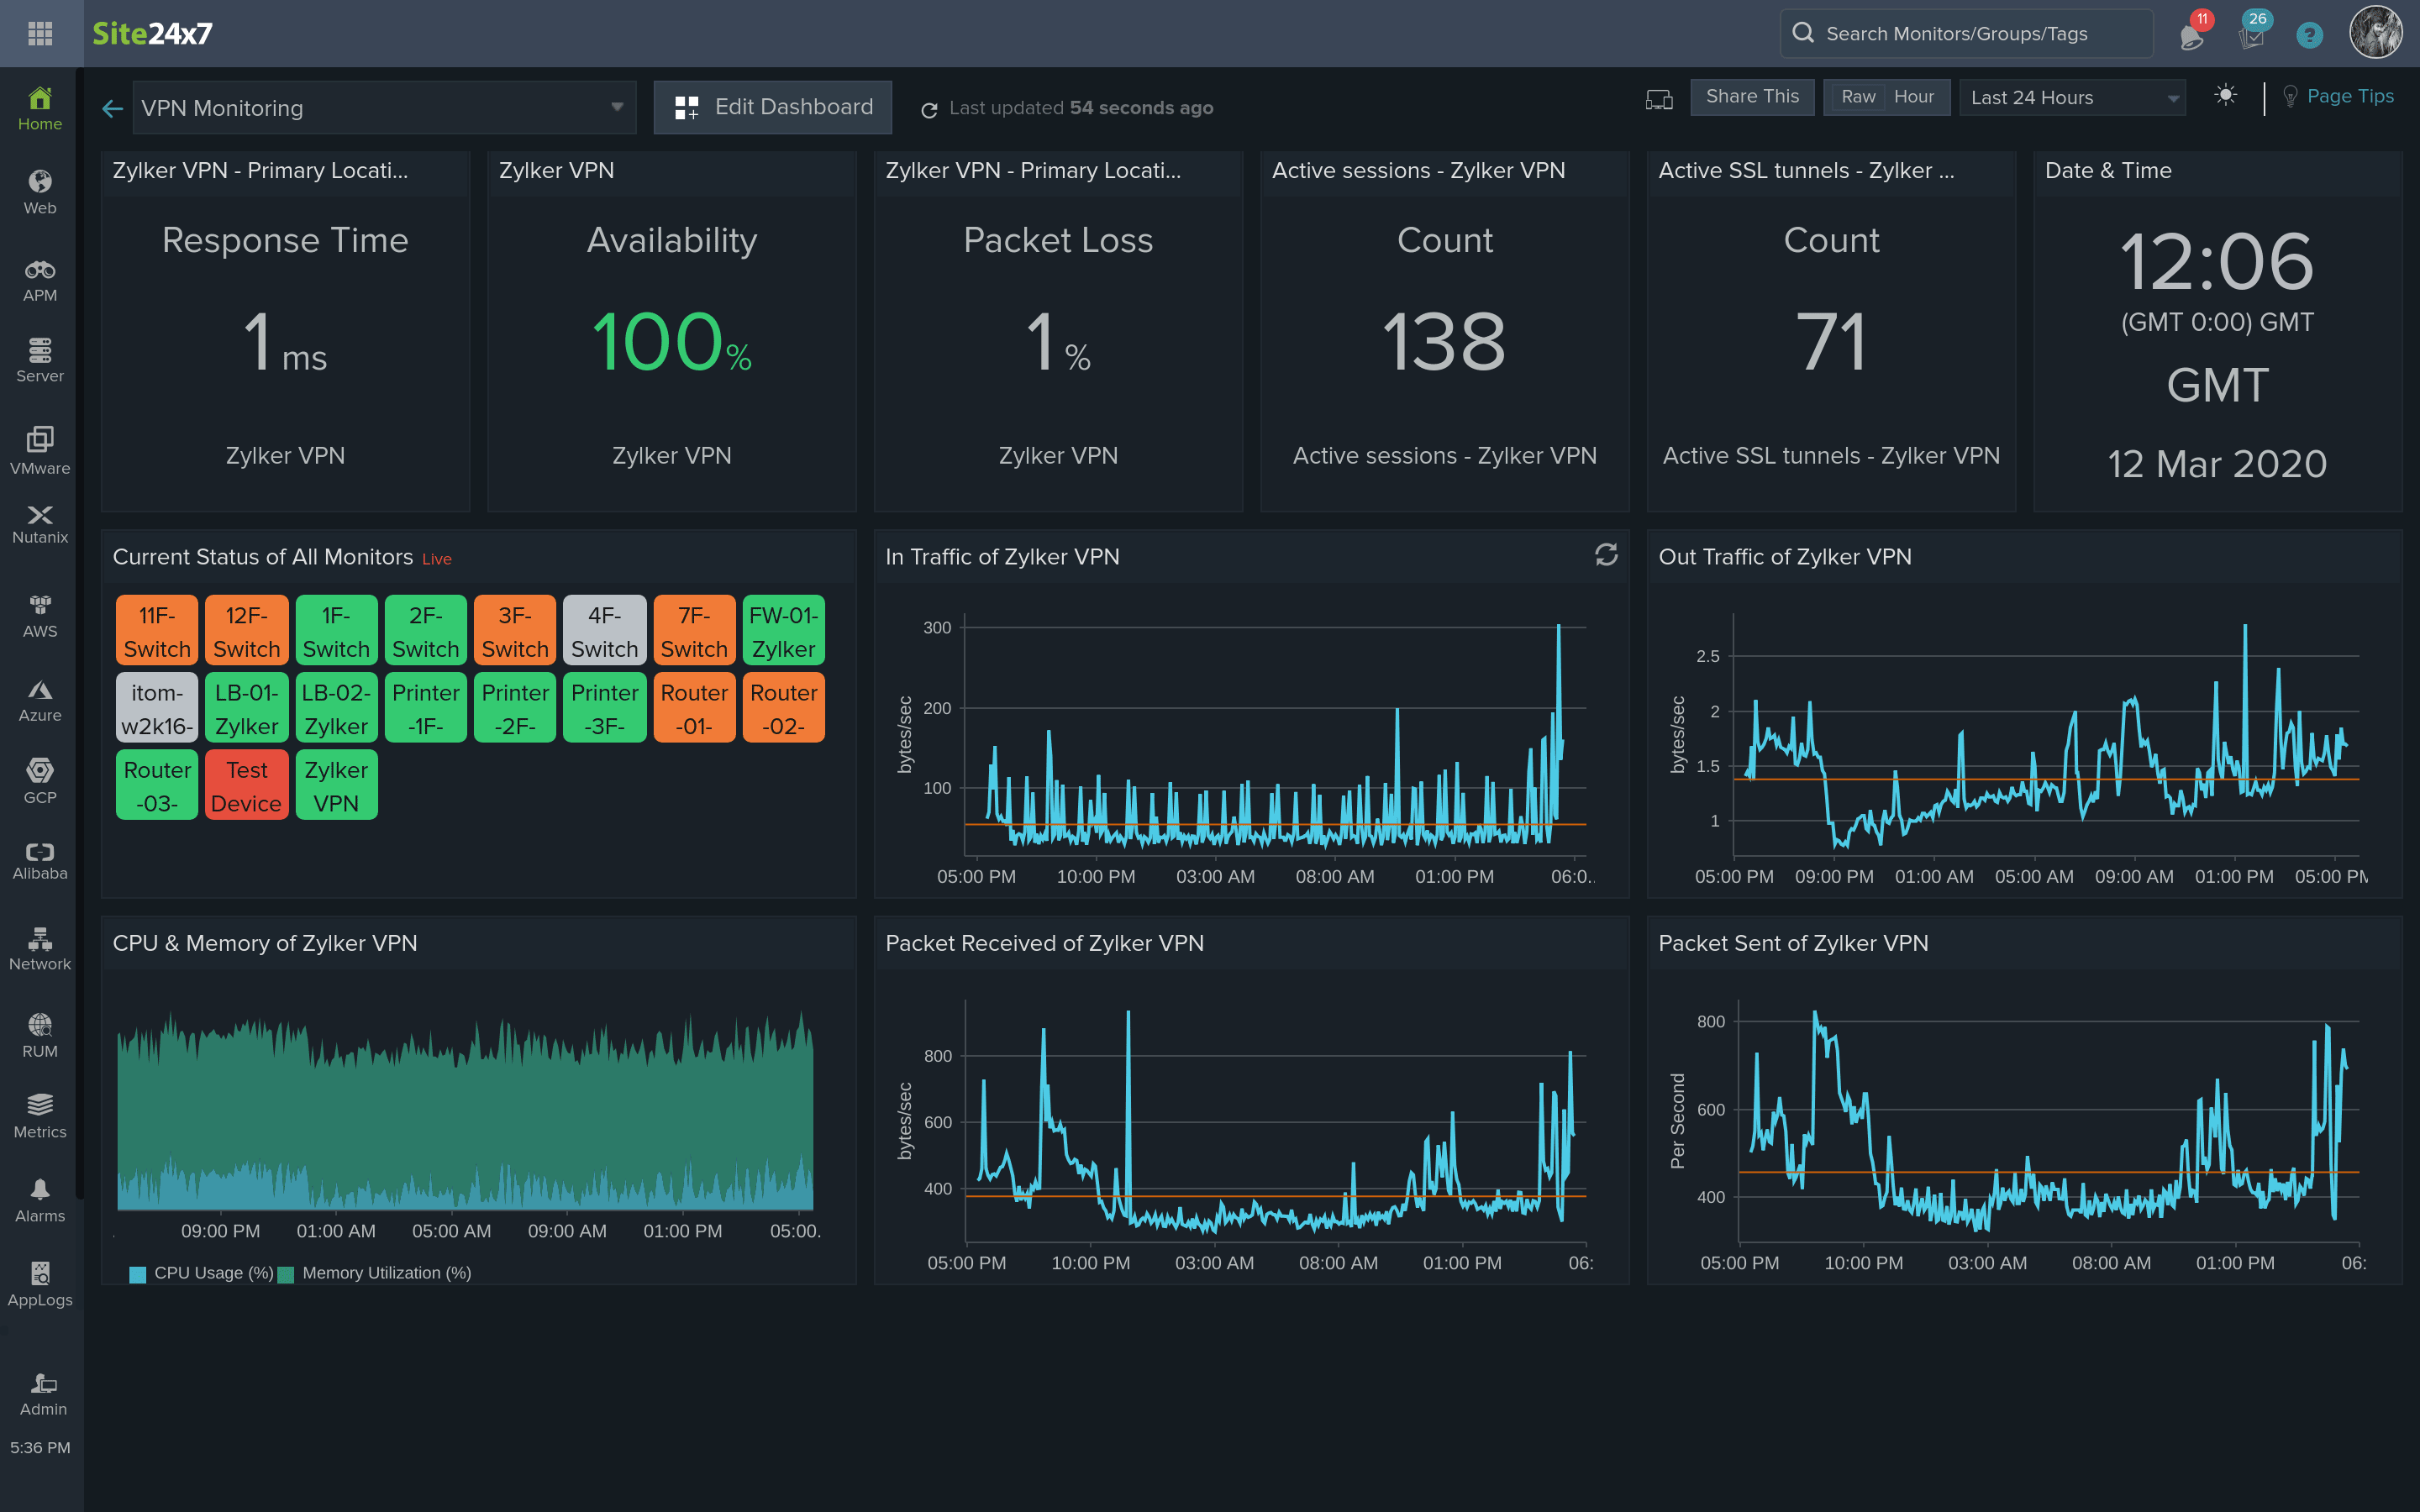 VPN monitoring tool dashboard